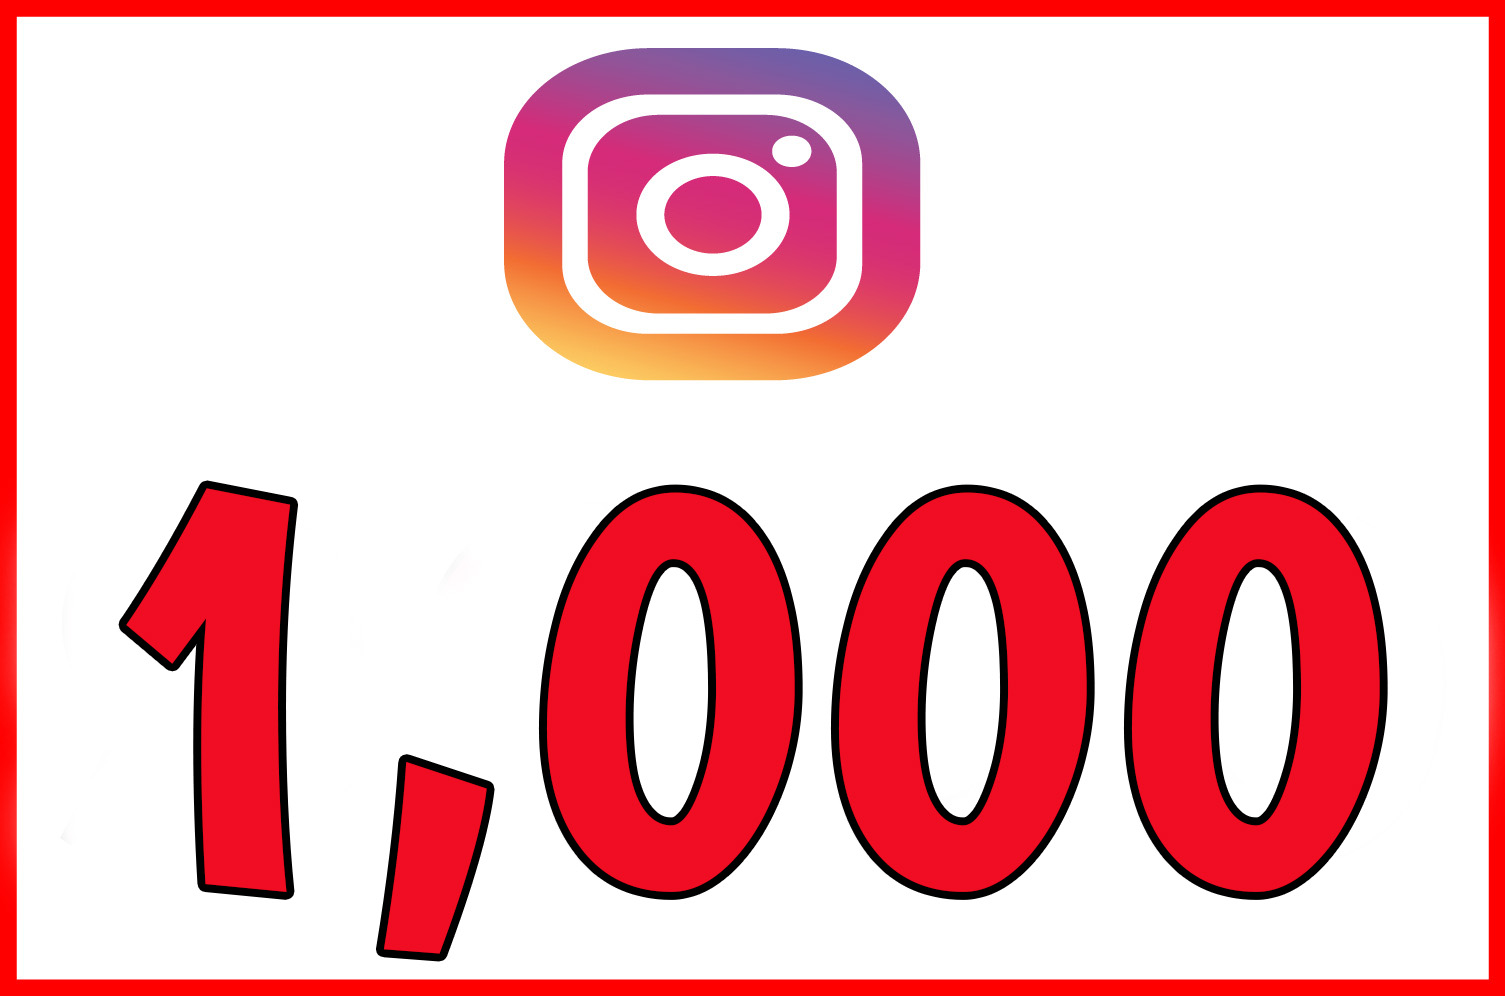 1,000 instagram followers, Instagram followers